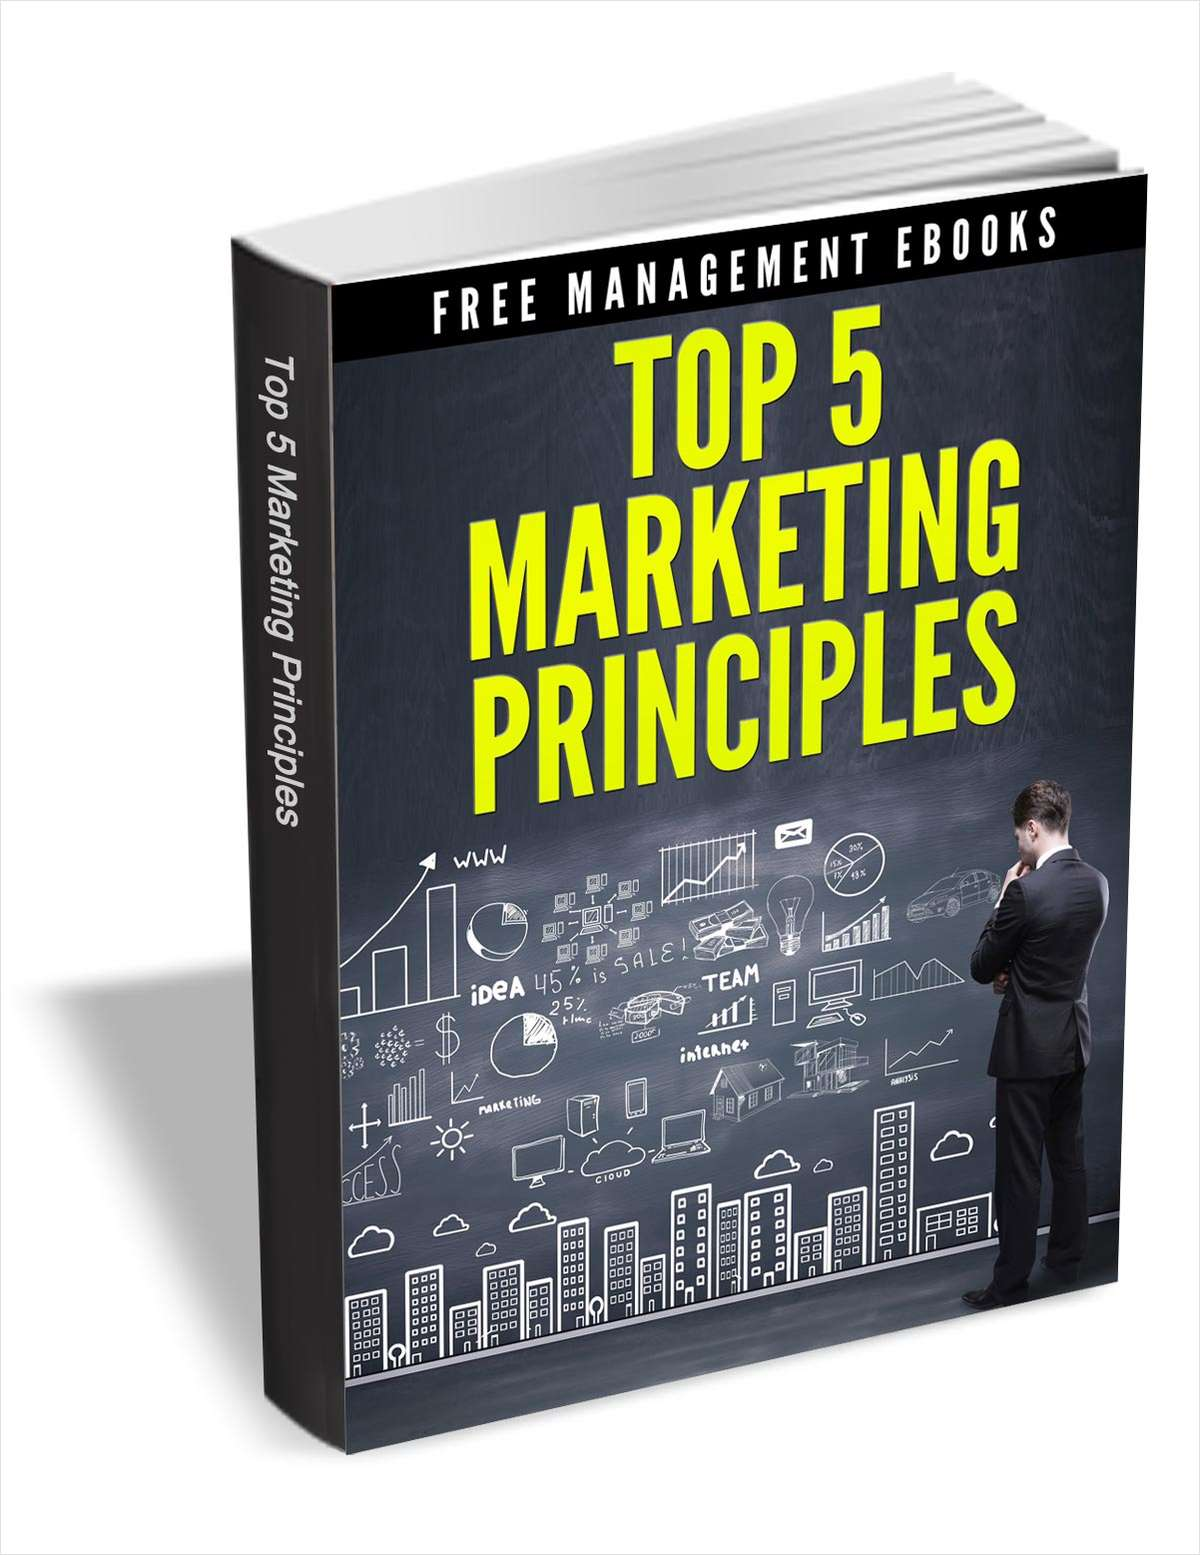 Top 5 Marketing Principles